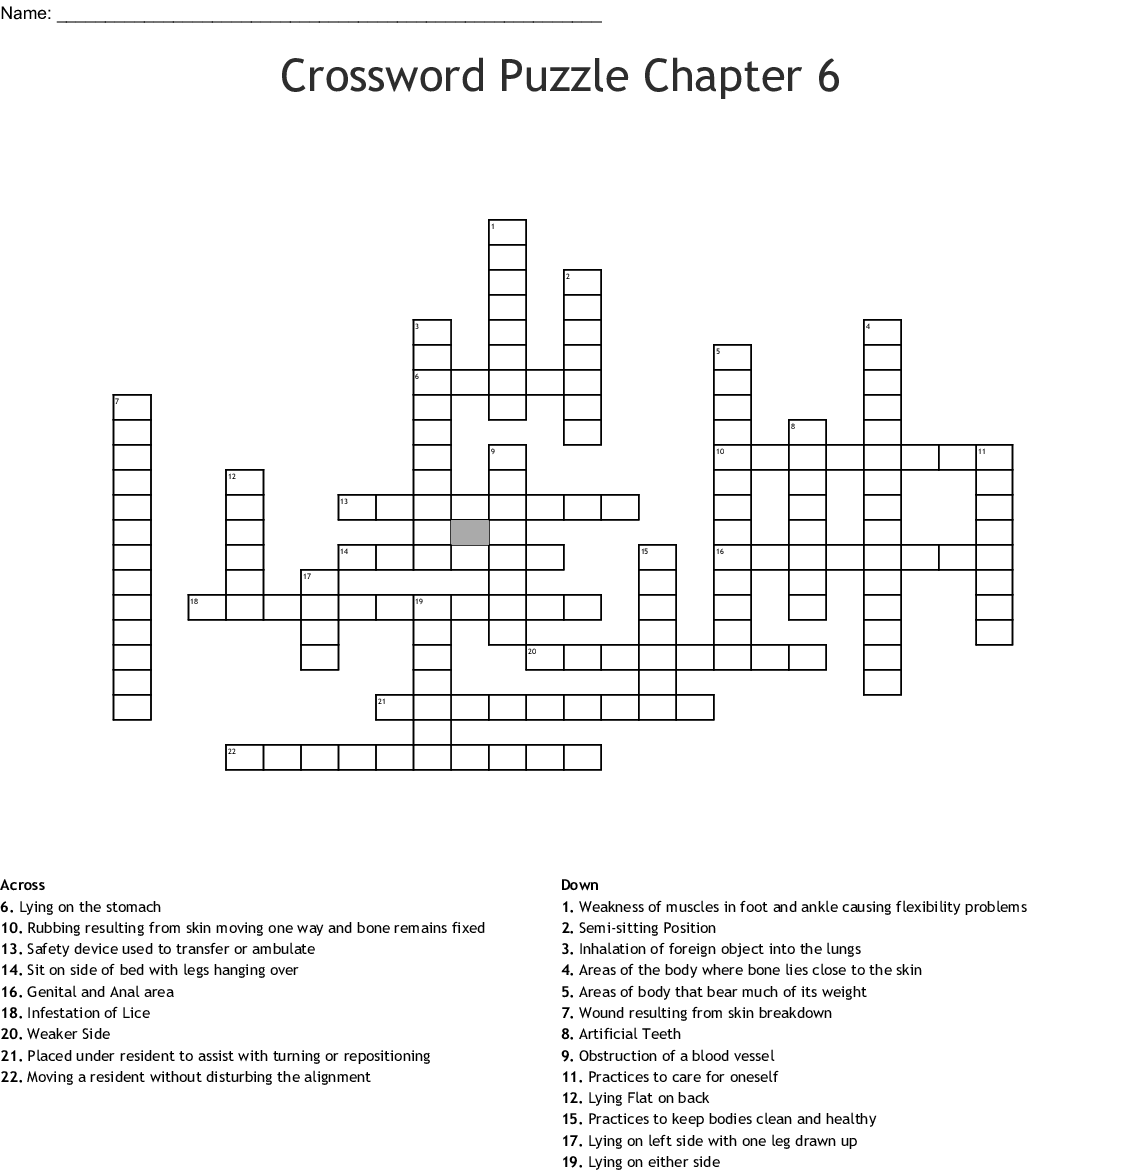 Osha Workers Rights Crossword Puzzle Answers